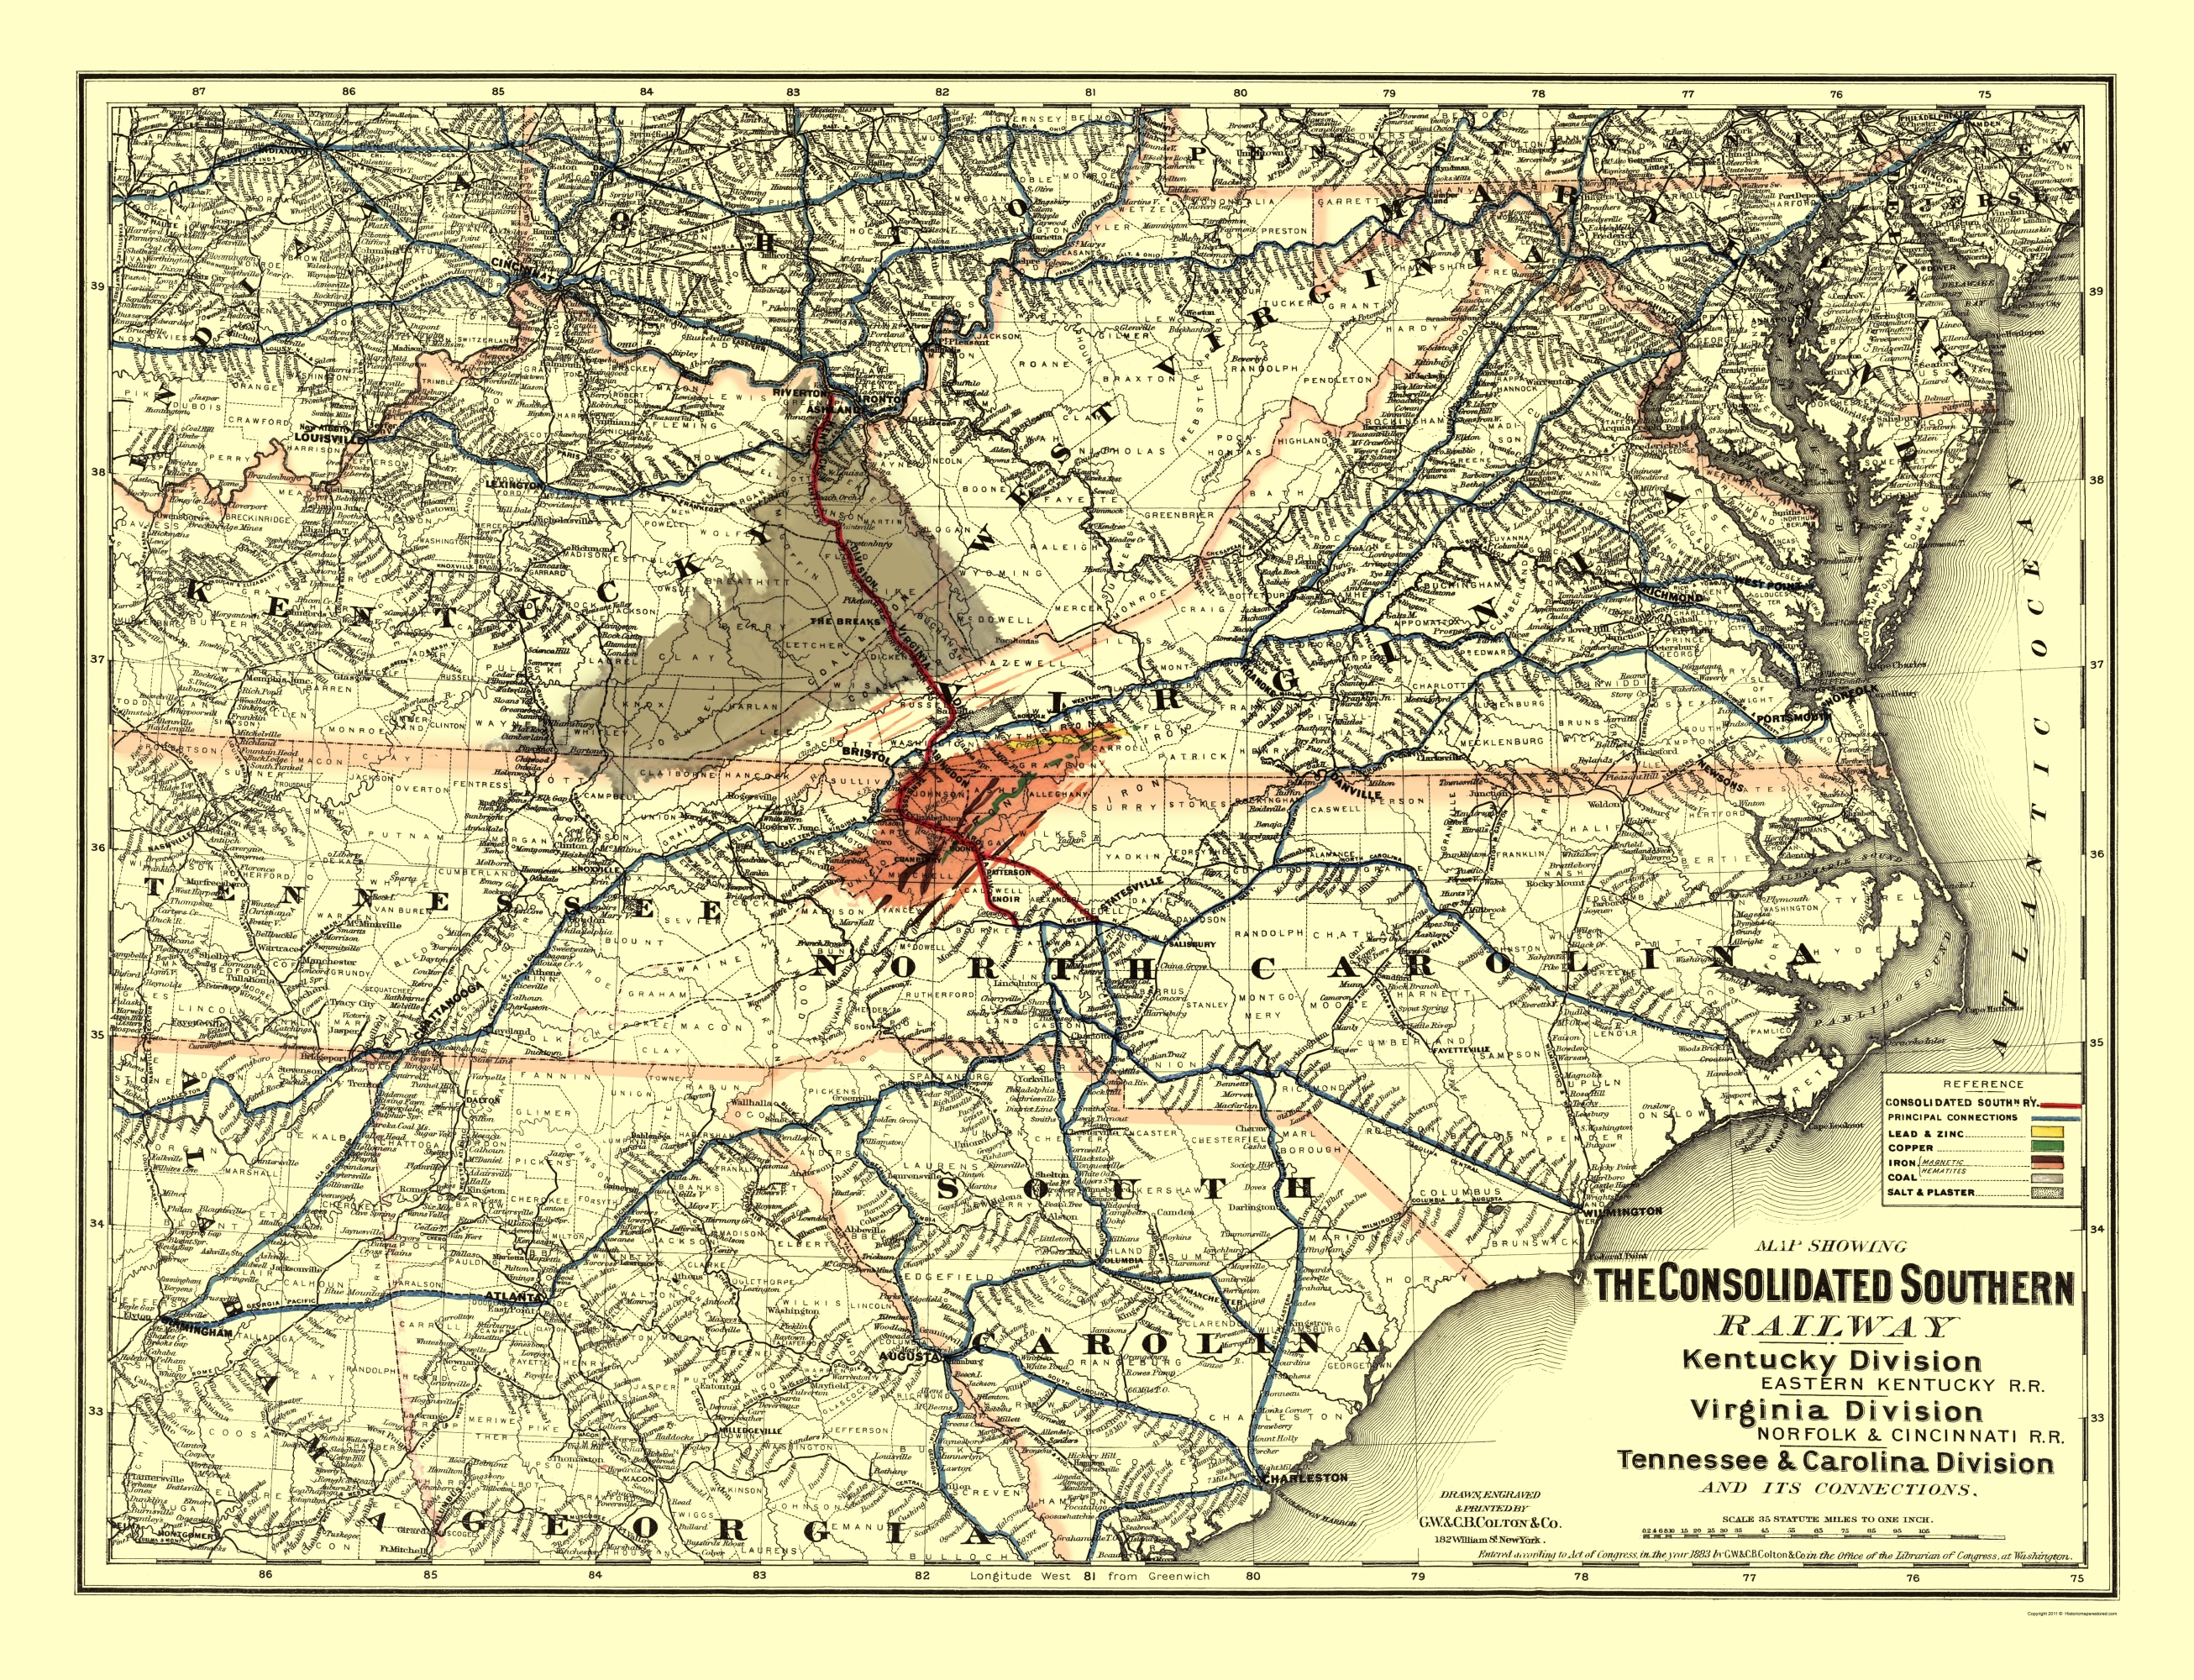 Old Railroad Map - Consolidated Southern Railway 1883